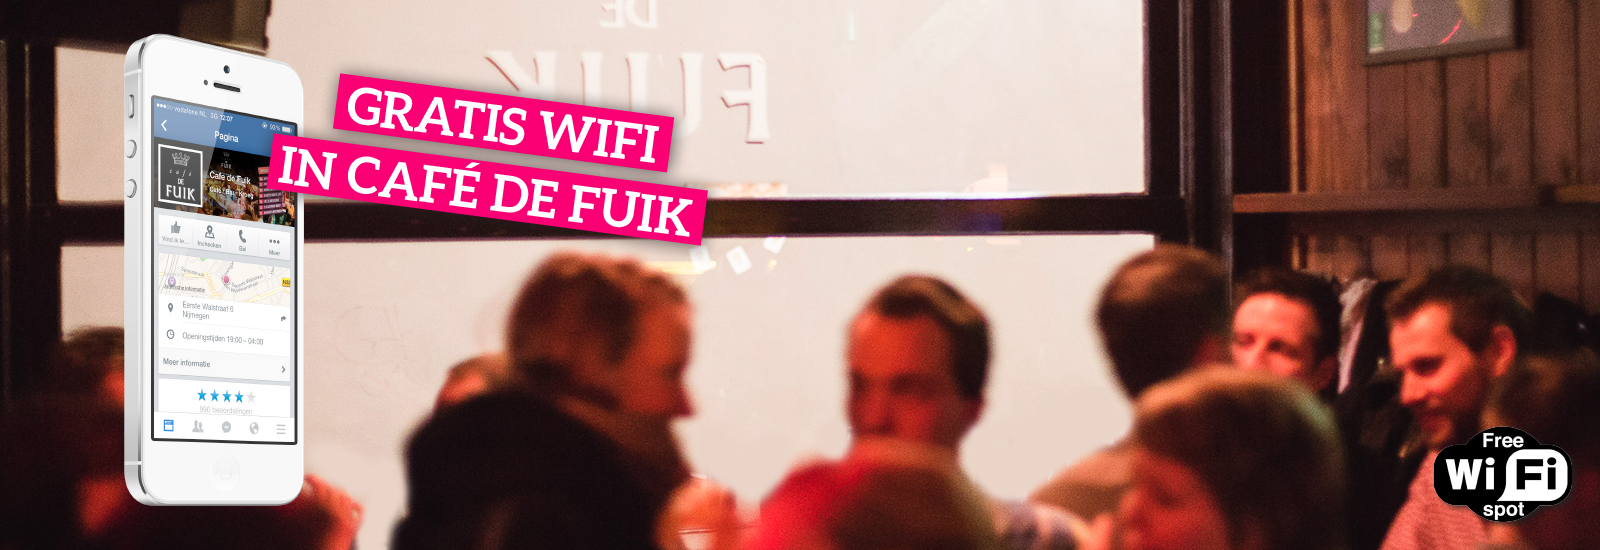 banner_wifi